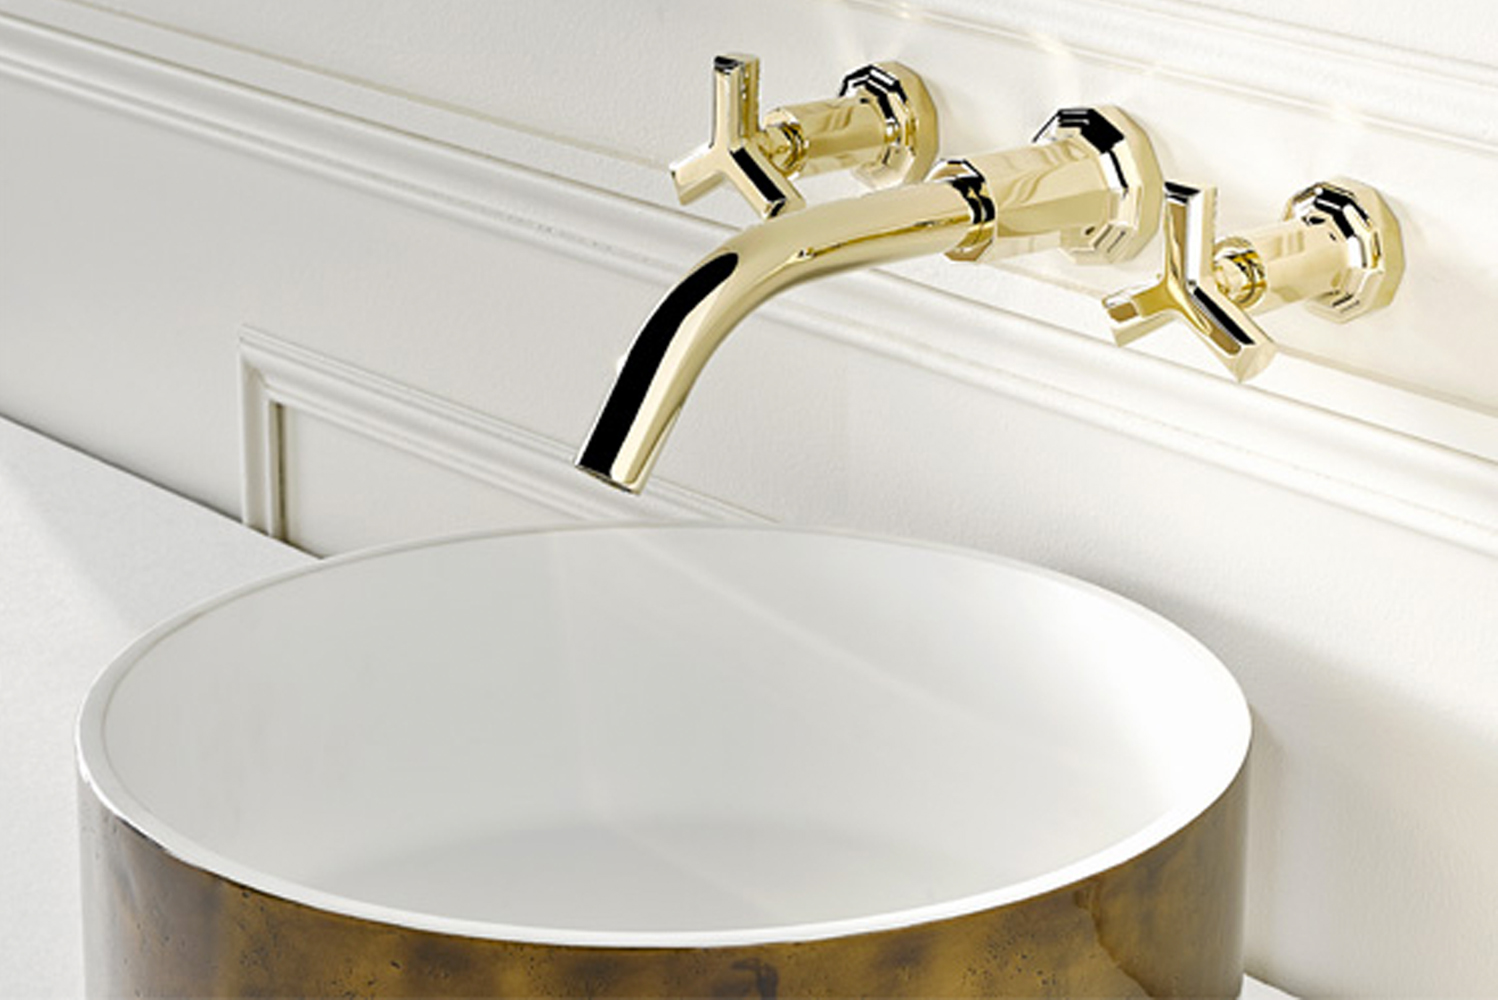 Les Ondes is also available with lever handles, and like all THG Paris products, is offered in various configurations.